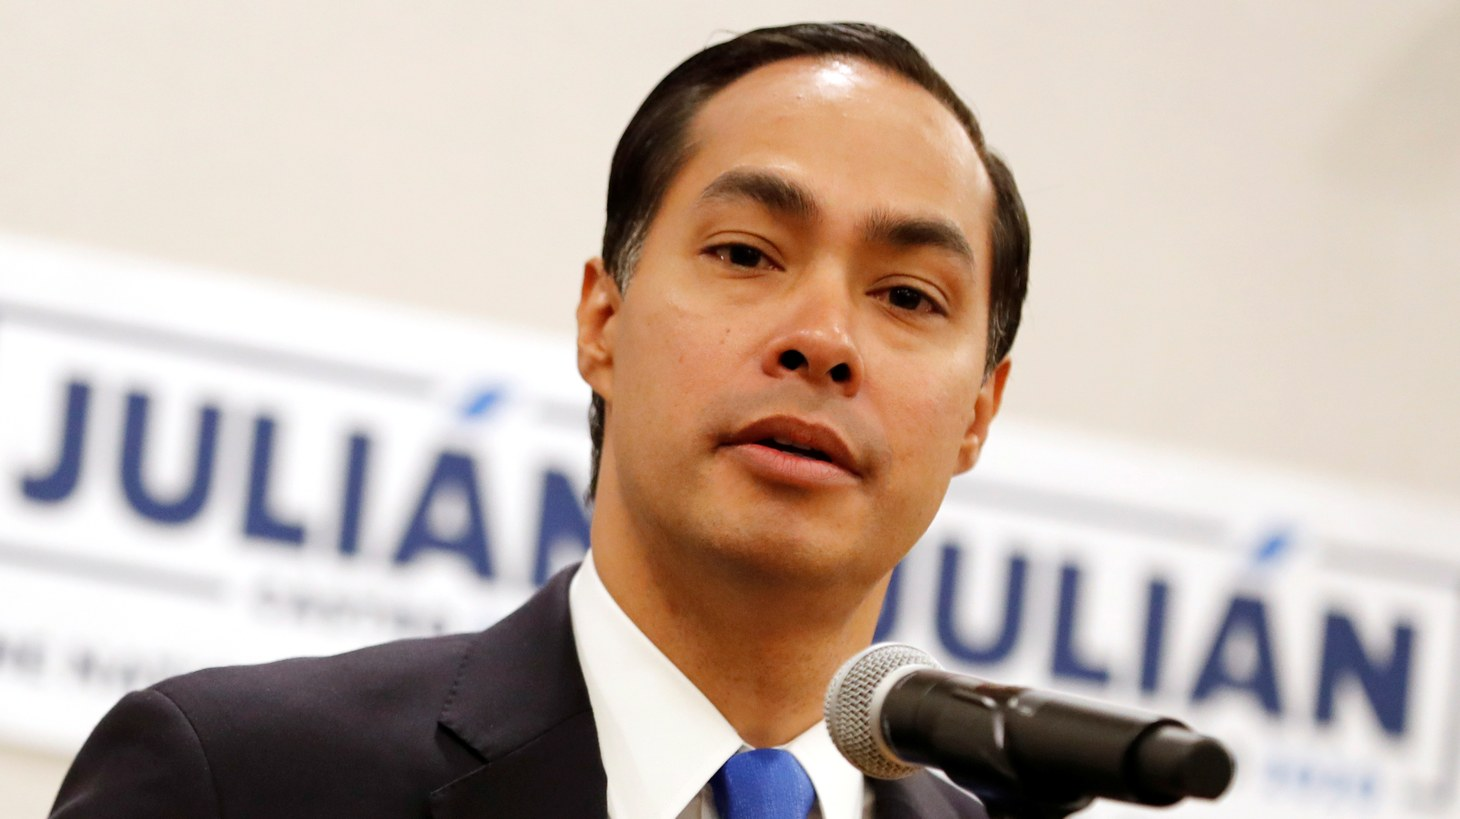 Former HUD Secretary and Democratic presidential candidate Julian Castro speaks to members of the media the morning after participating in the first U.S. 2020 presidential election Democratic candidates debate in Miami, Florida, U.S., June 27, 2019.